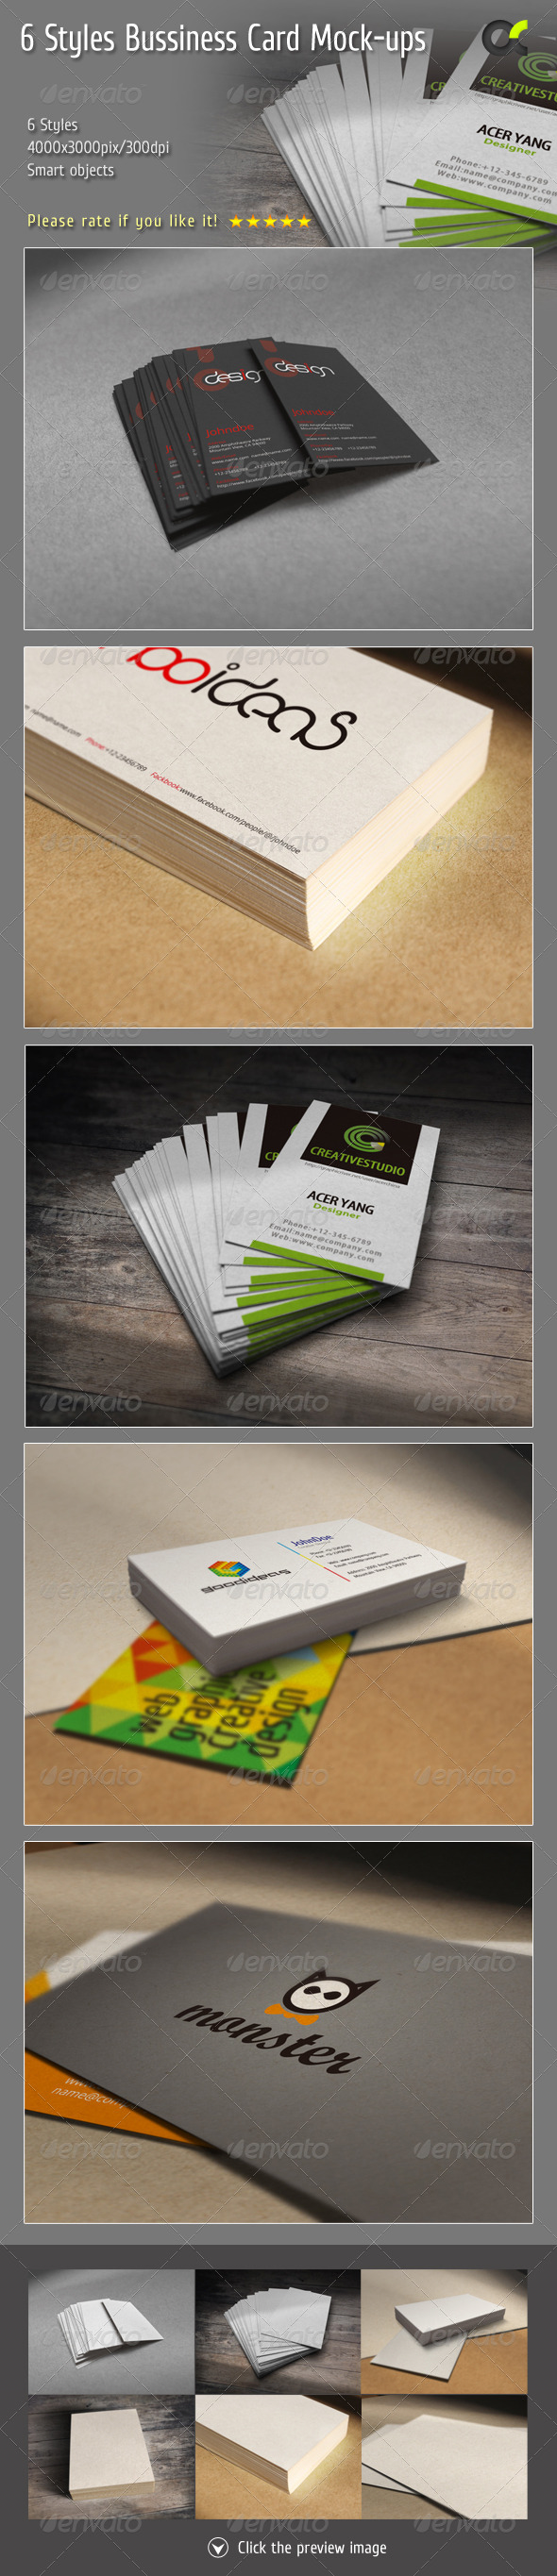 GraphicRiver 6 Styles Bussiness Card Mock-ups 8391048